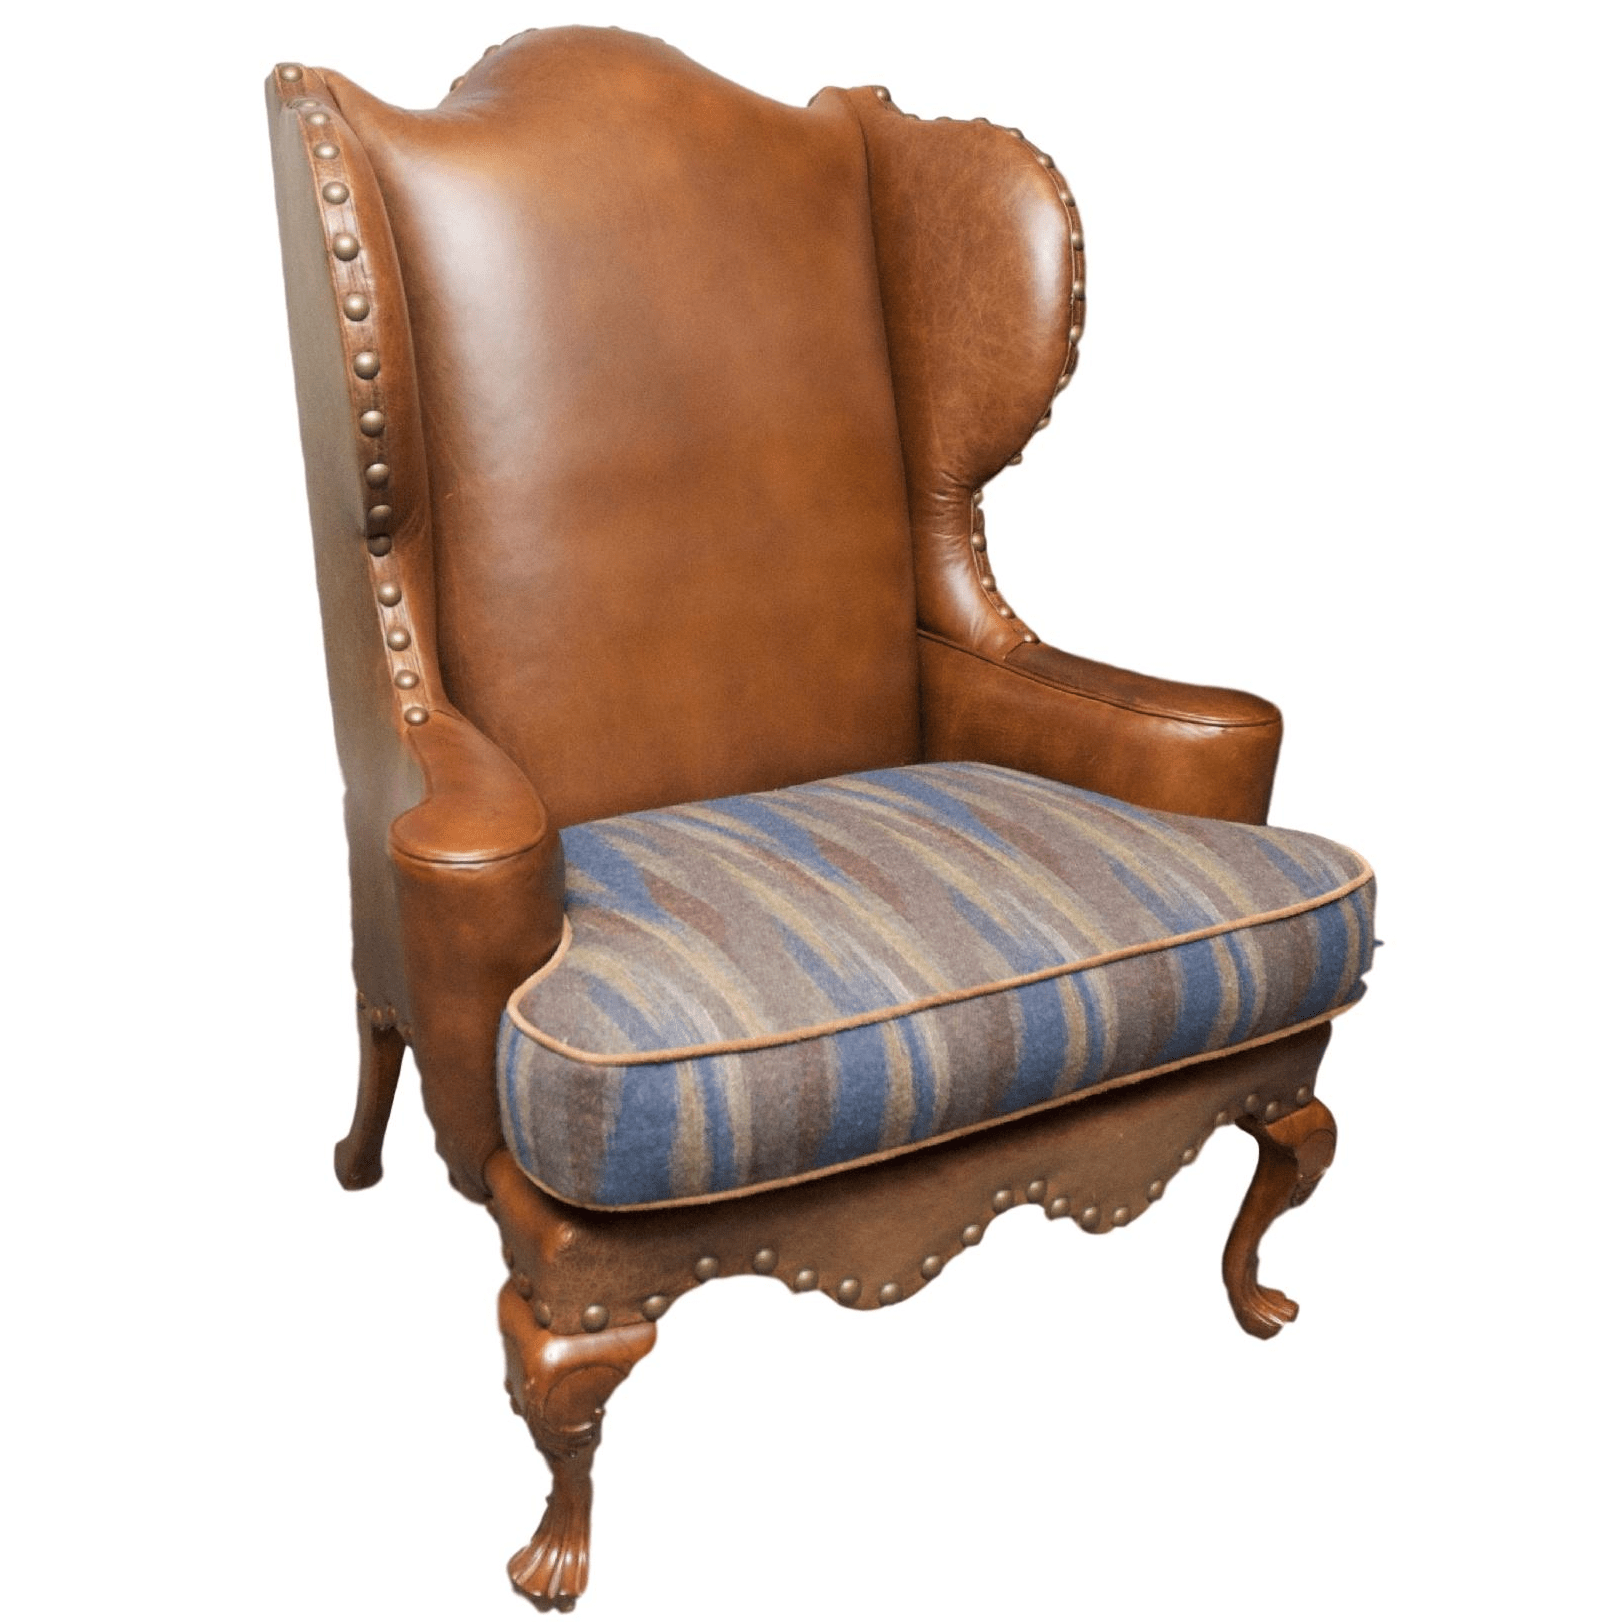 Leather Dining Chairs With Nailheads Century Leather Wingback Chair W Nailhead Trim Chairish